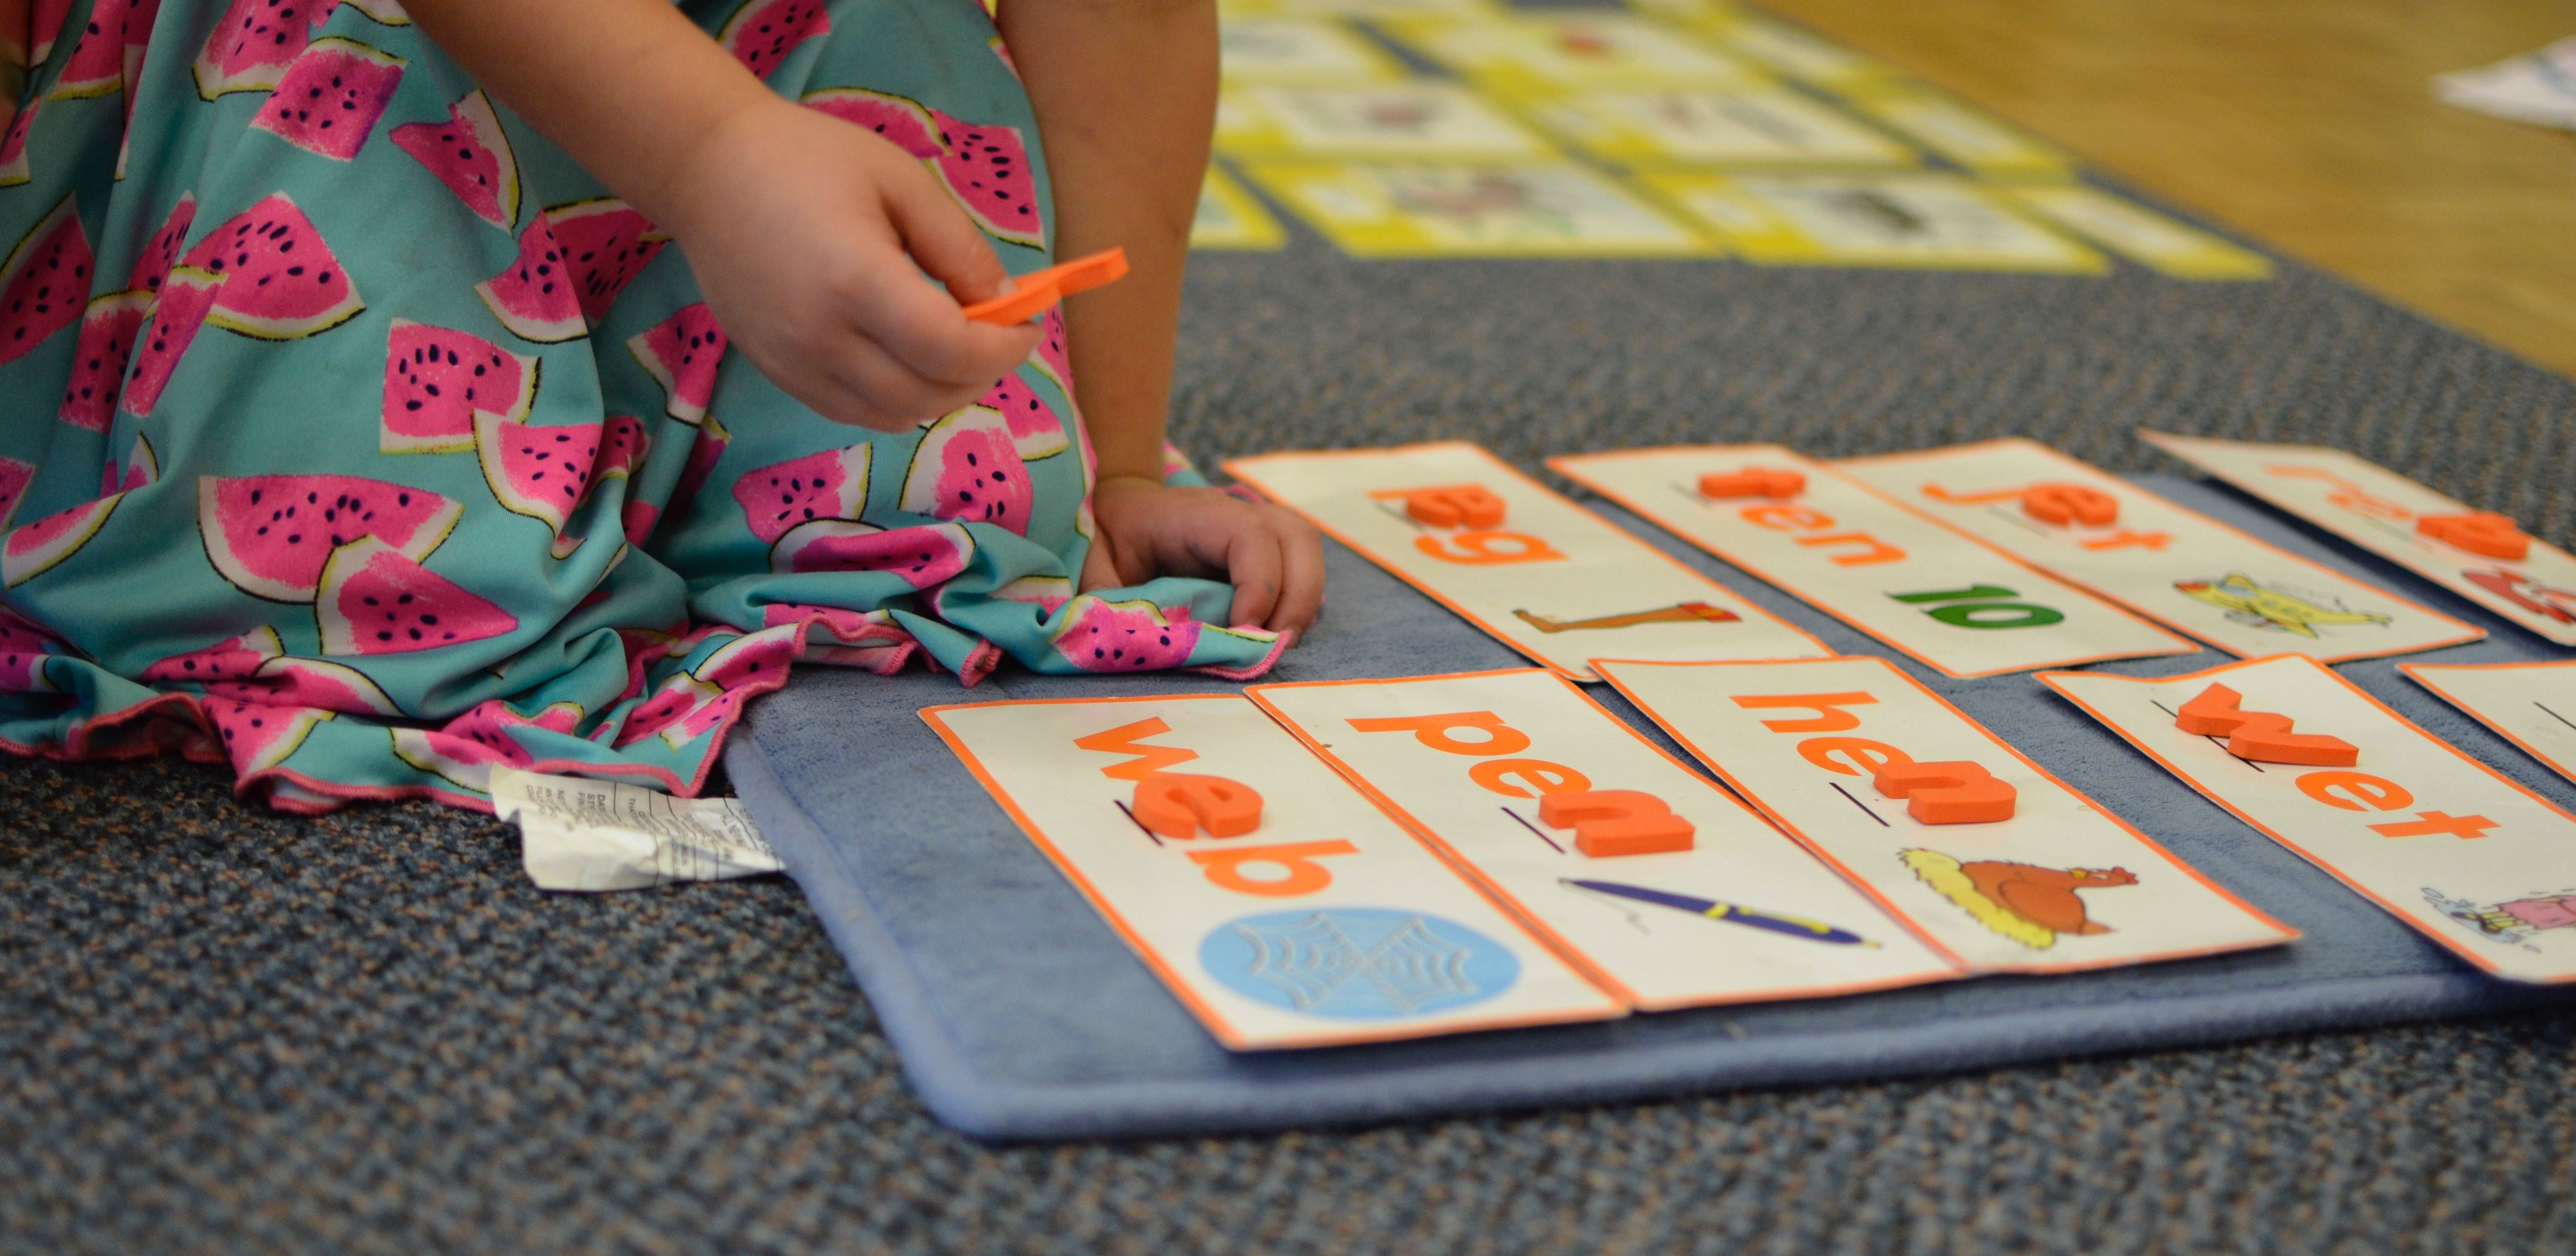 A toddler using hands-on letters to spell out three letter words.